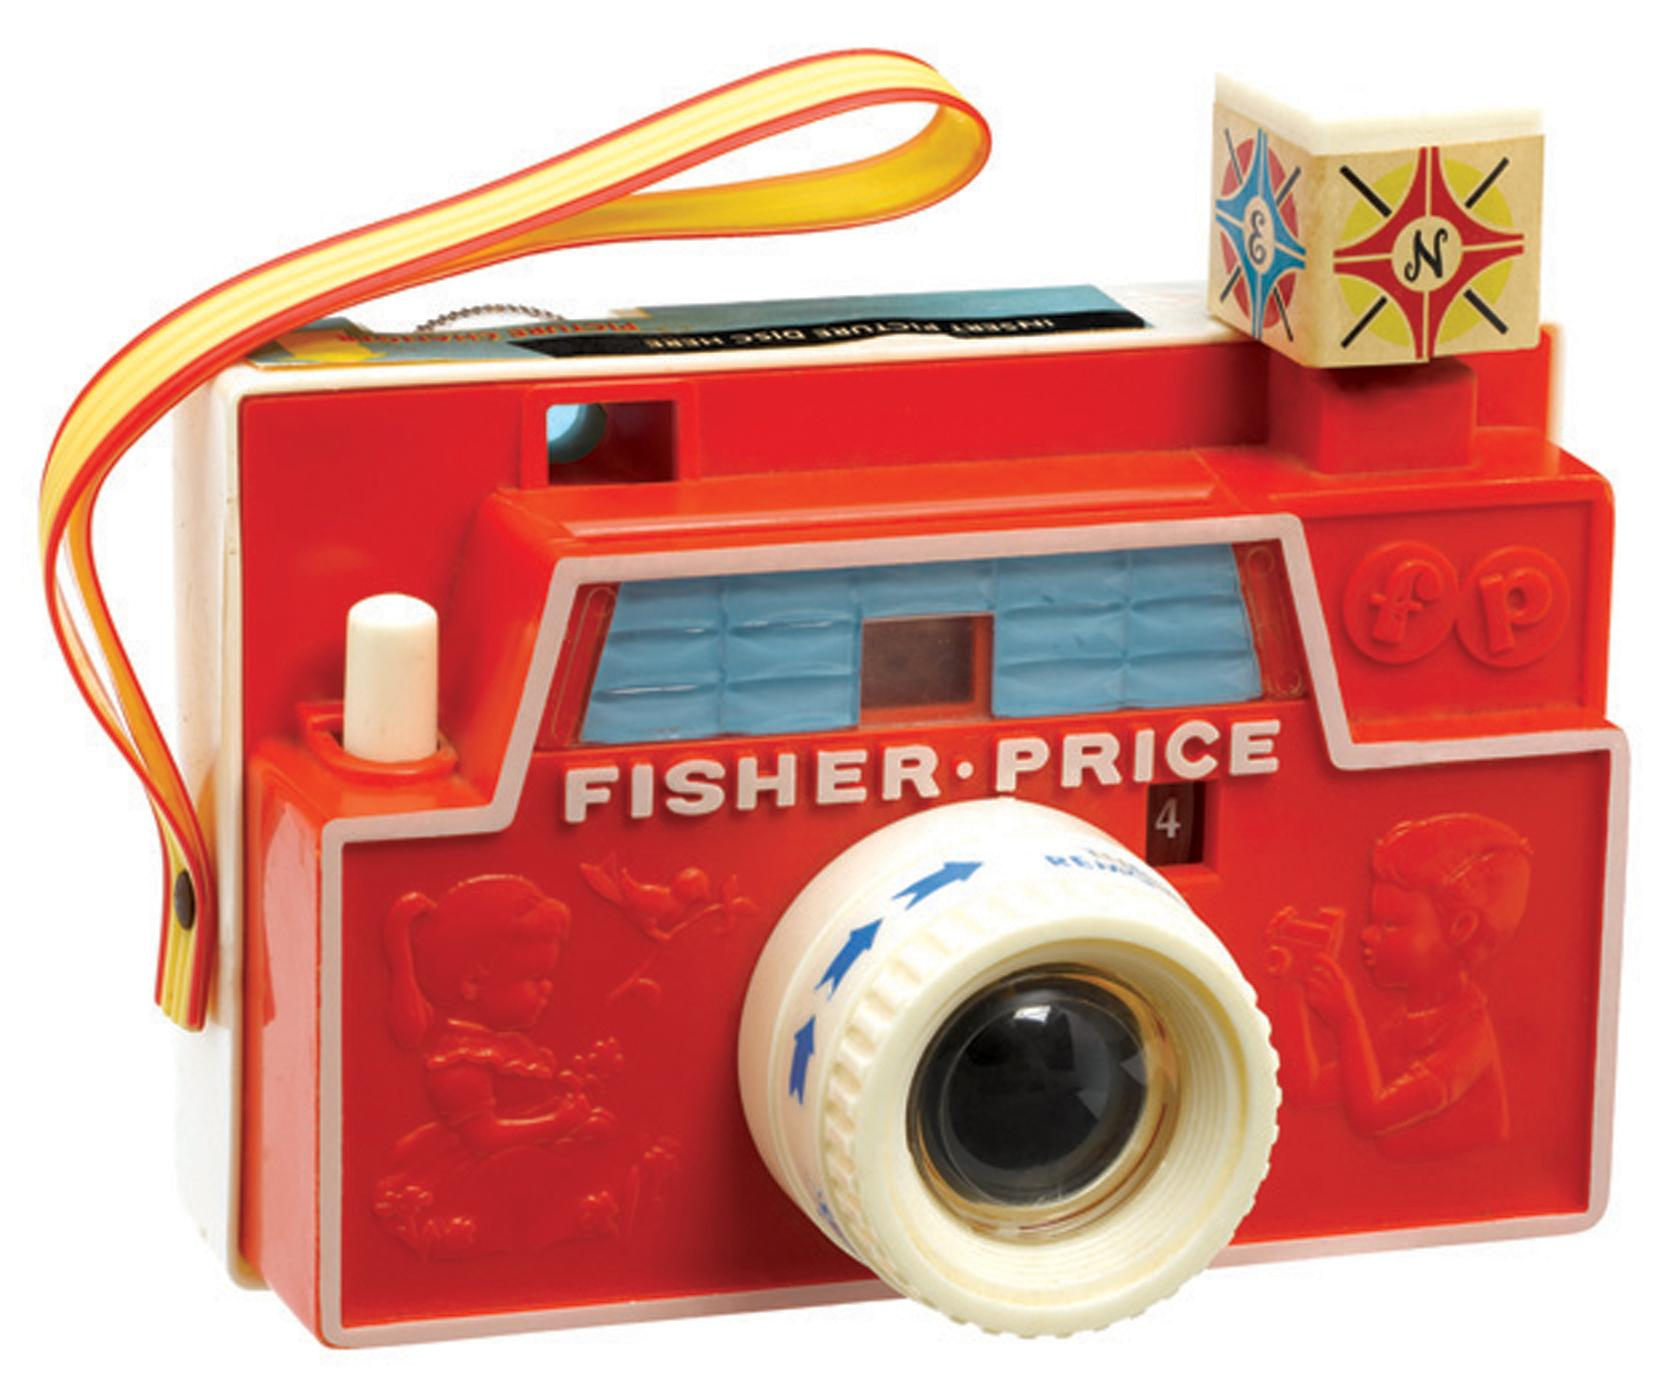 Fisher Price Classics Picture Disk Camera: Amazon.co.uk: Toys & Games